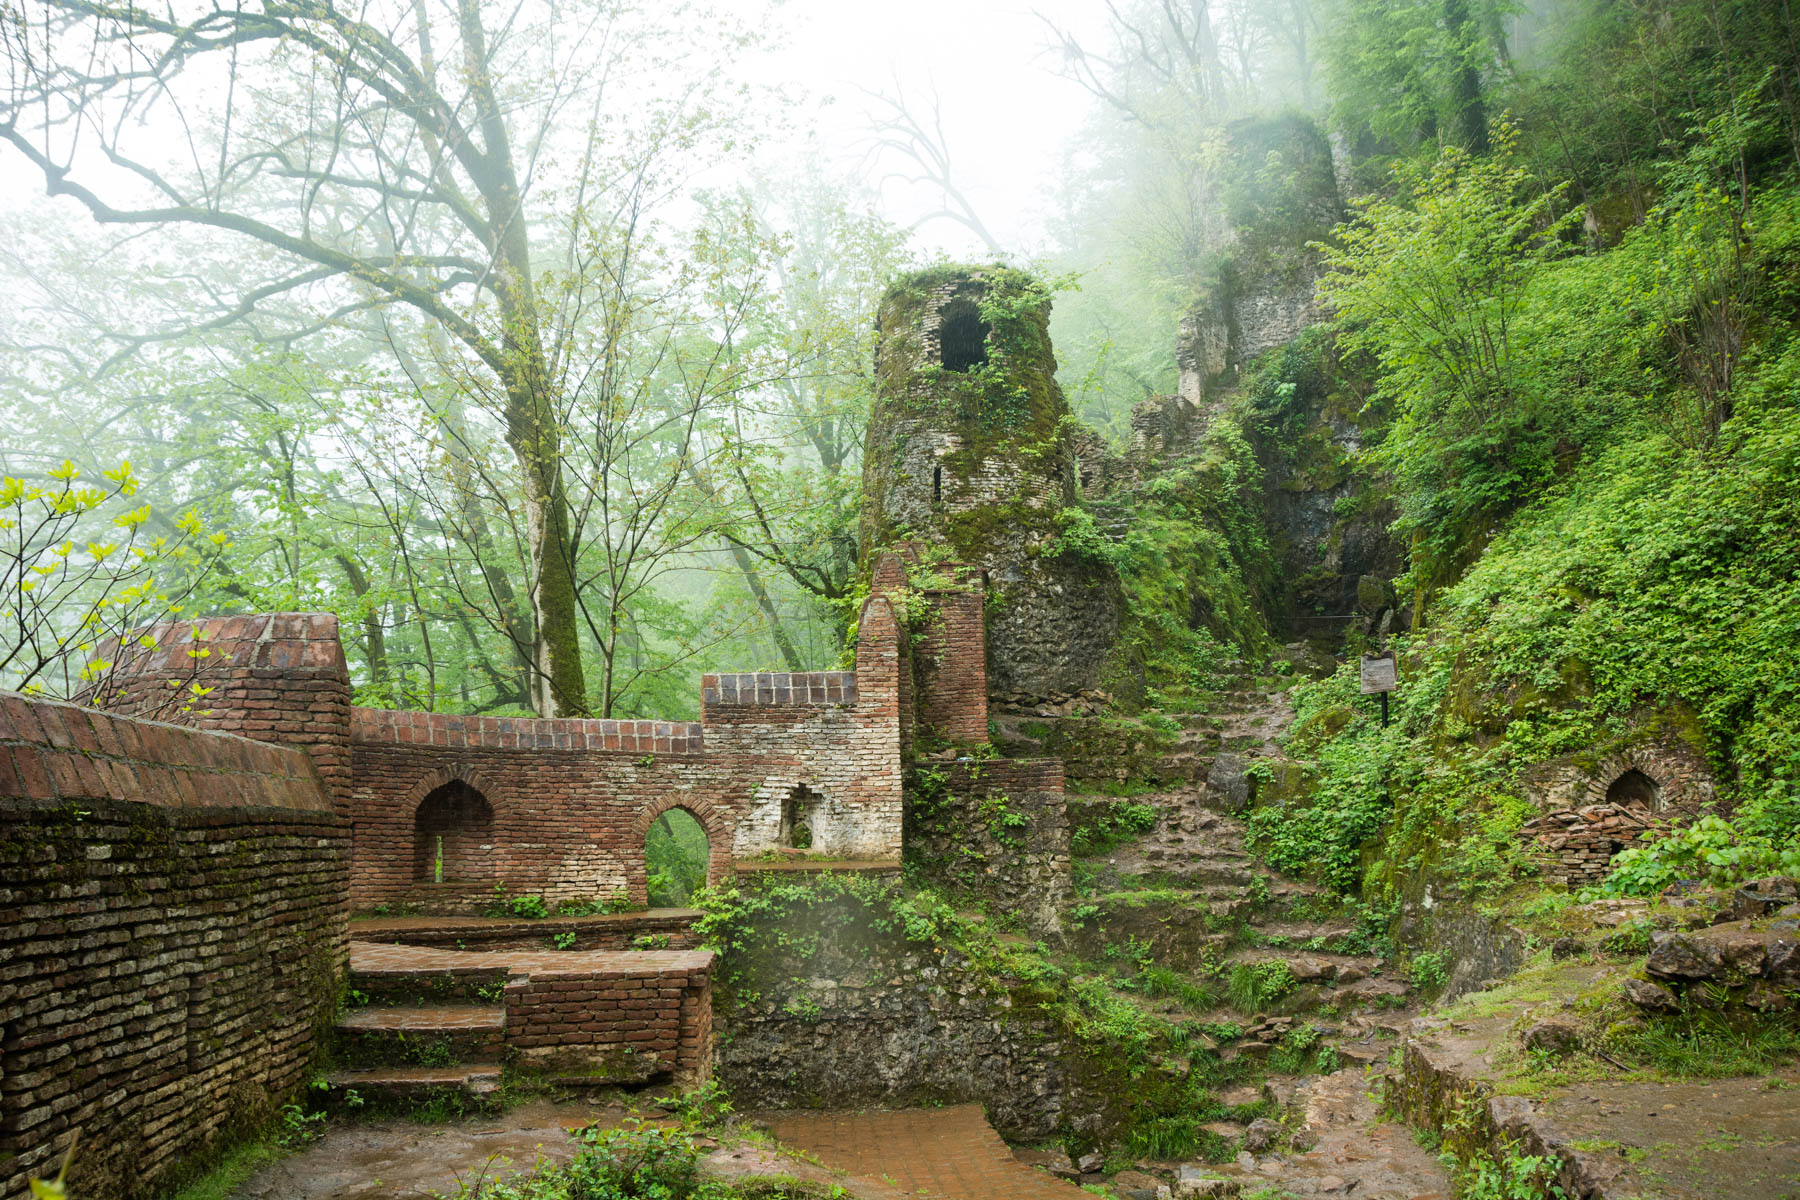 Off the beaten track highlights of Iran: Qaleh Rudkhan - Lost With Purpose